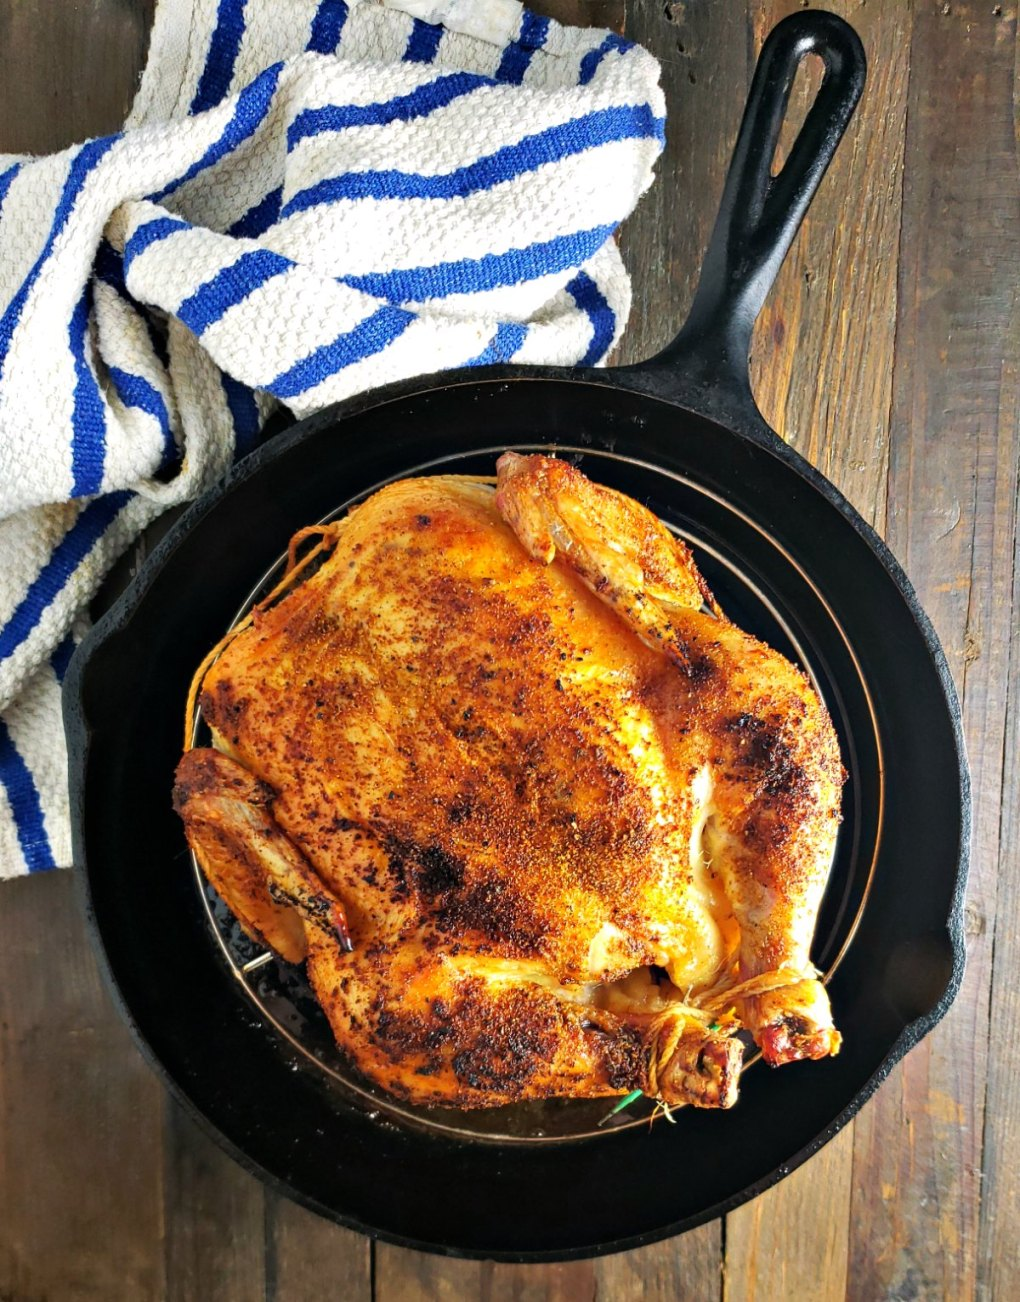 Rotisserie-Style Chicken (No Rotisserie Needed)